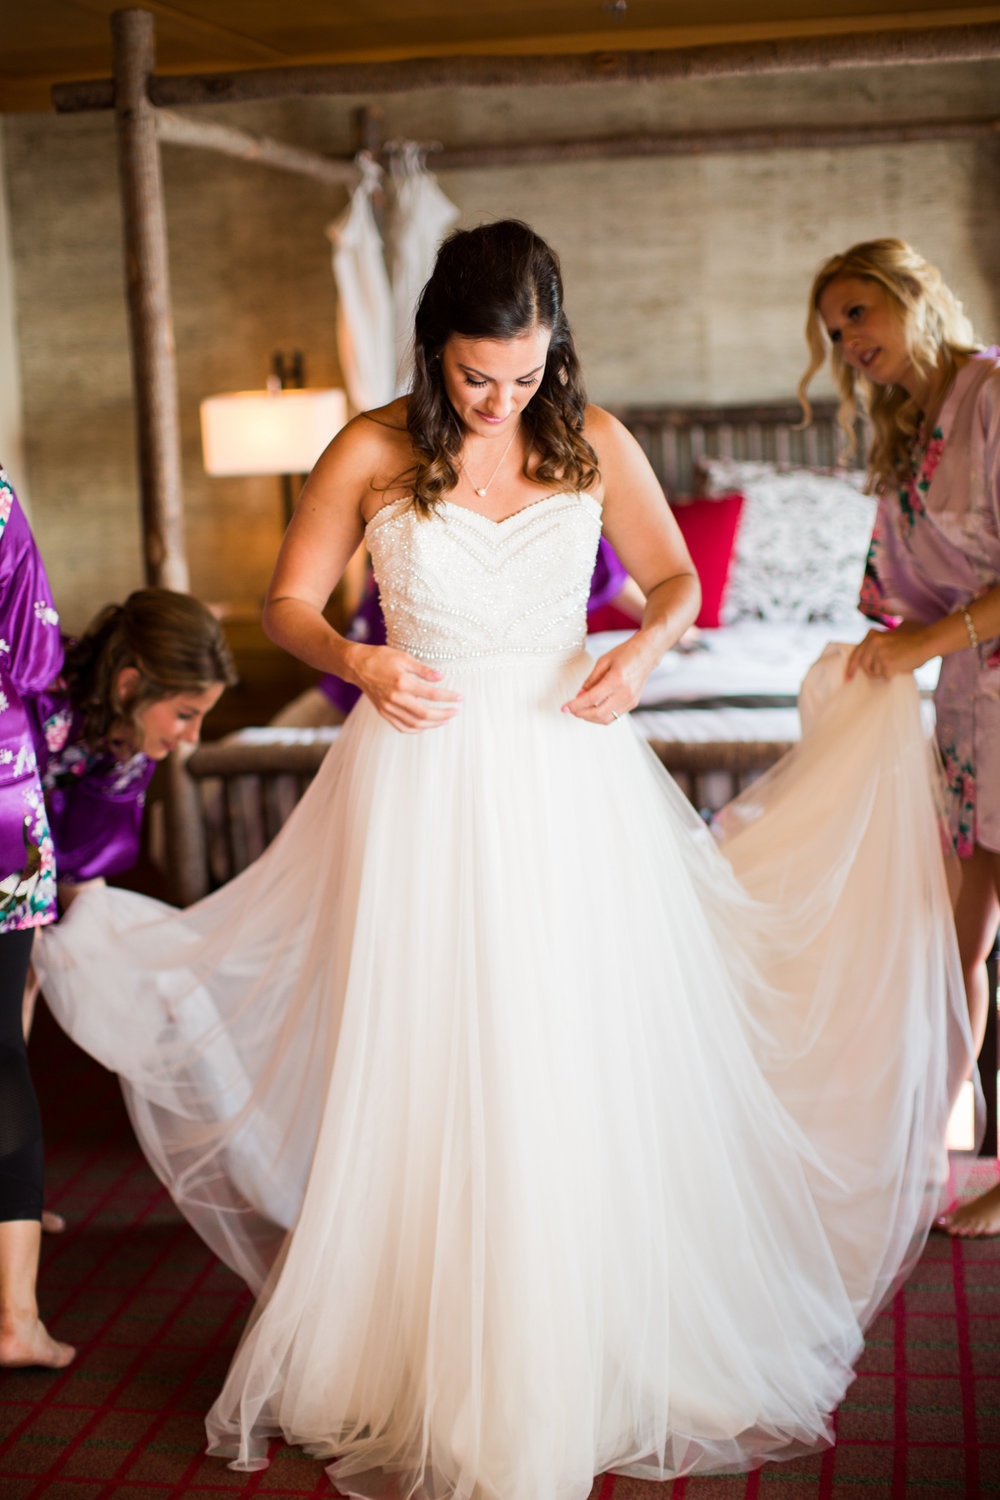 Seattle Wedding Planner, Wedding Wise | Ciccarelli Photography | Edgewater Hotel Wedding | Getting ready with bridesmaids